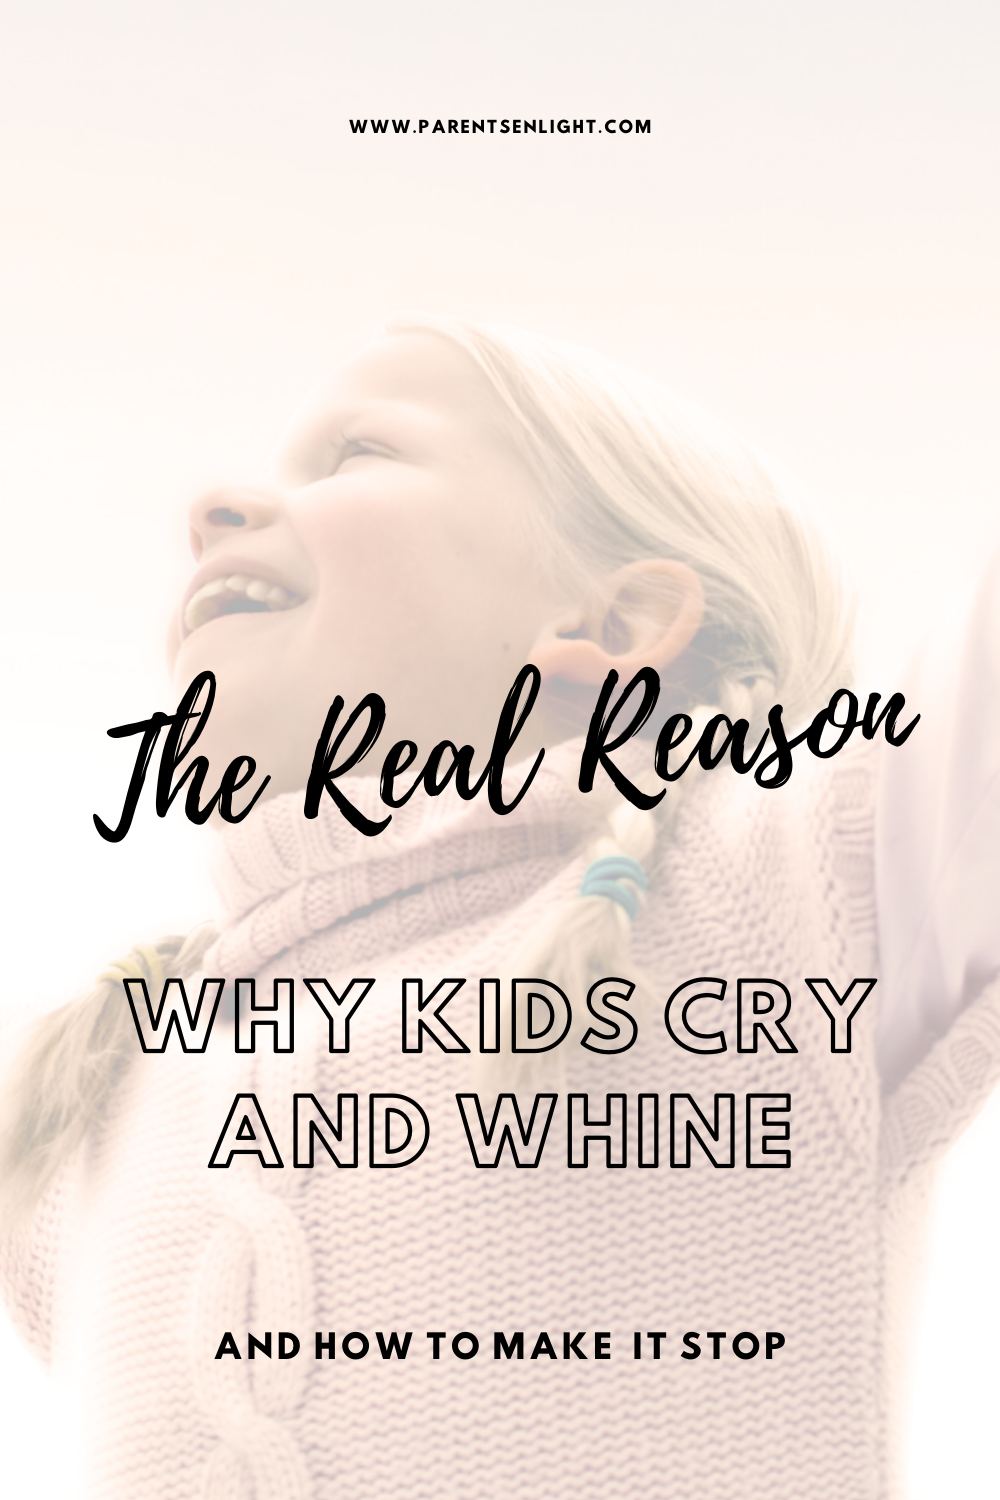 Crying and whining is a triggering behavior for most parents, for the most obvious reason - it's really annoying. Especially when it's our child's main form of communication. The problem is that our reaction is usually making it worse. Here's how to address #whining and #crying and empower your child. #parenting #positiveparentingstrategies #parentingtoddlers #positiveparenting #attachmentparenting #smartparenting